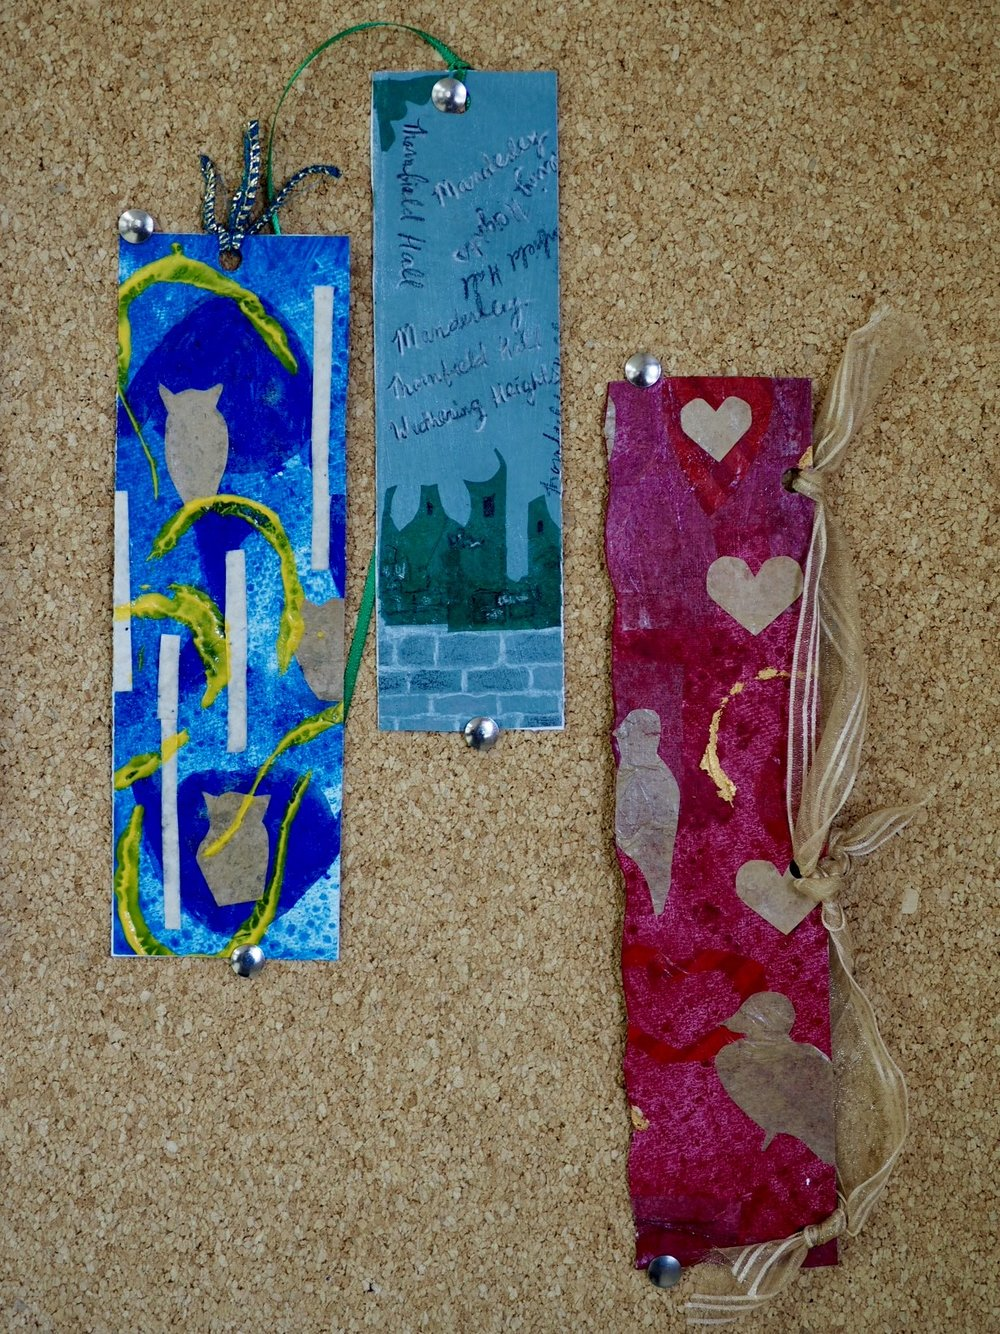 Sample mixed media bookmarks. Register to create a similar project on March 25.